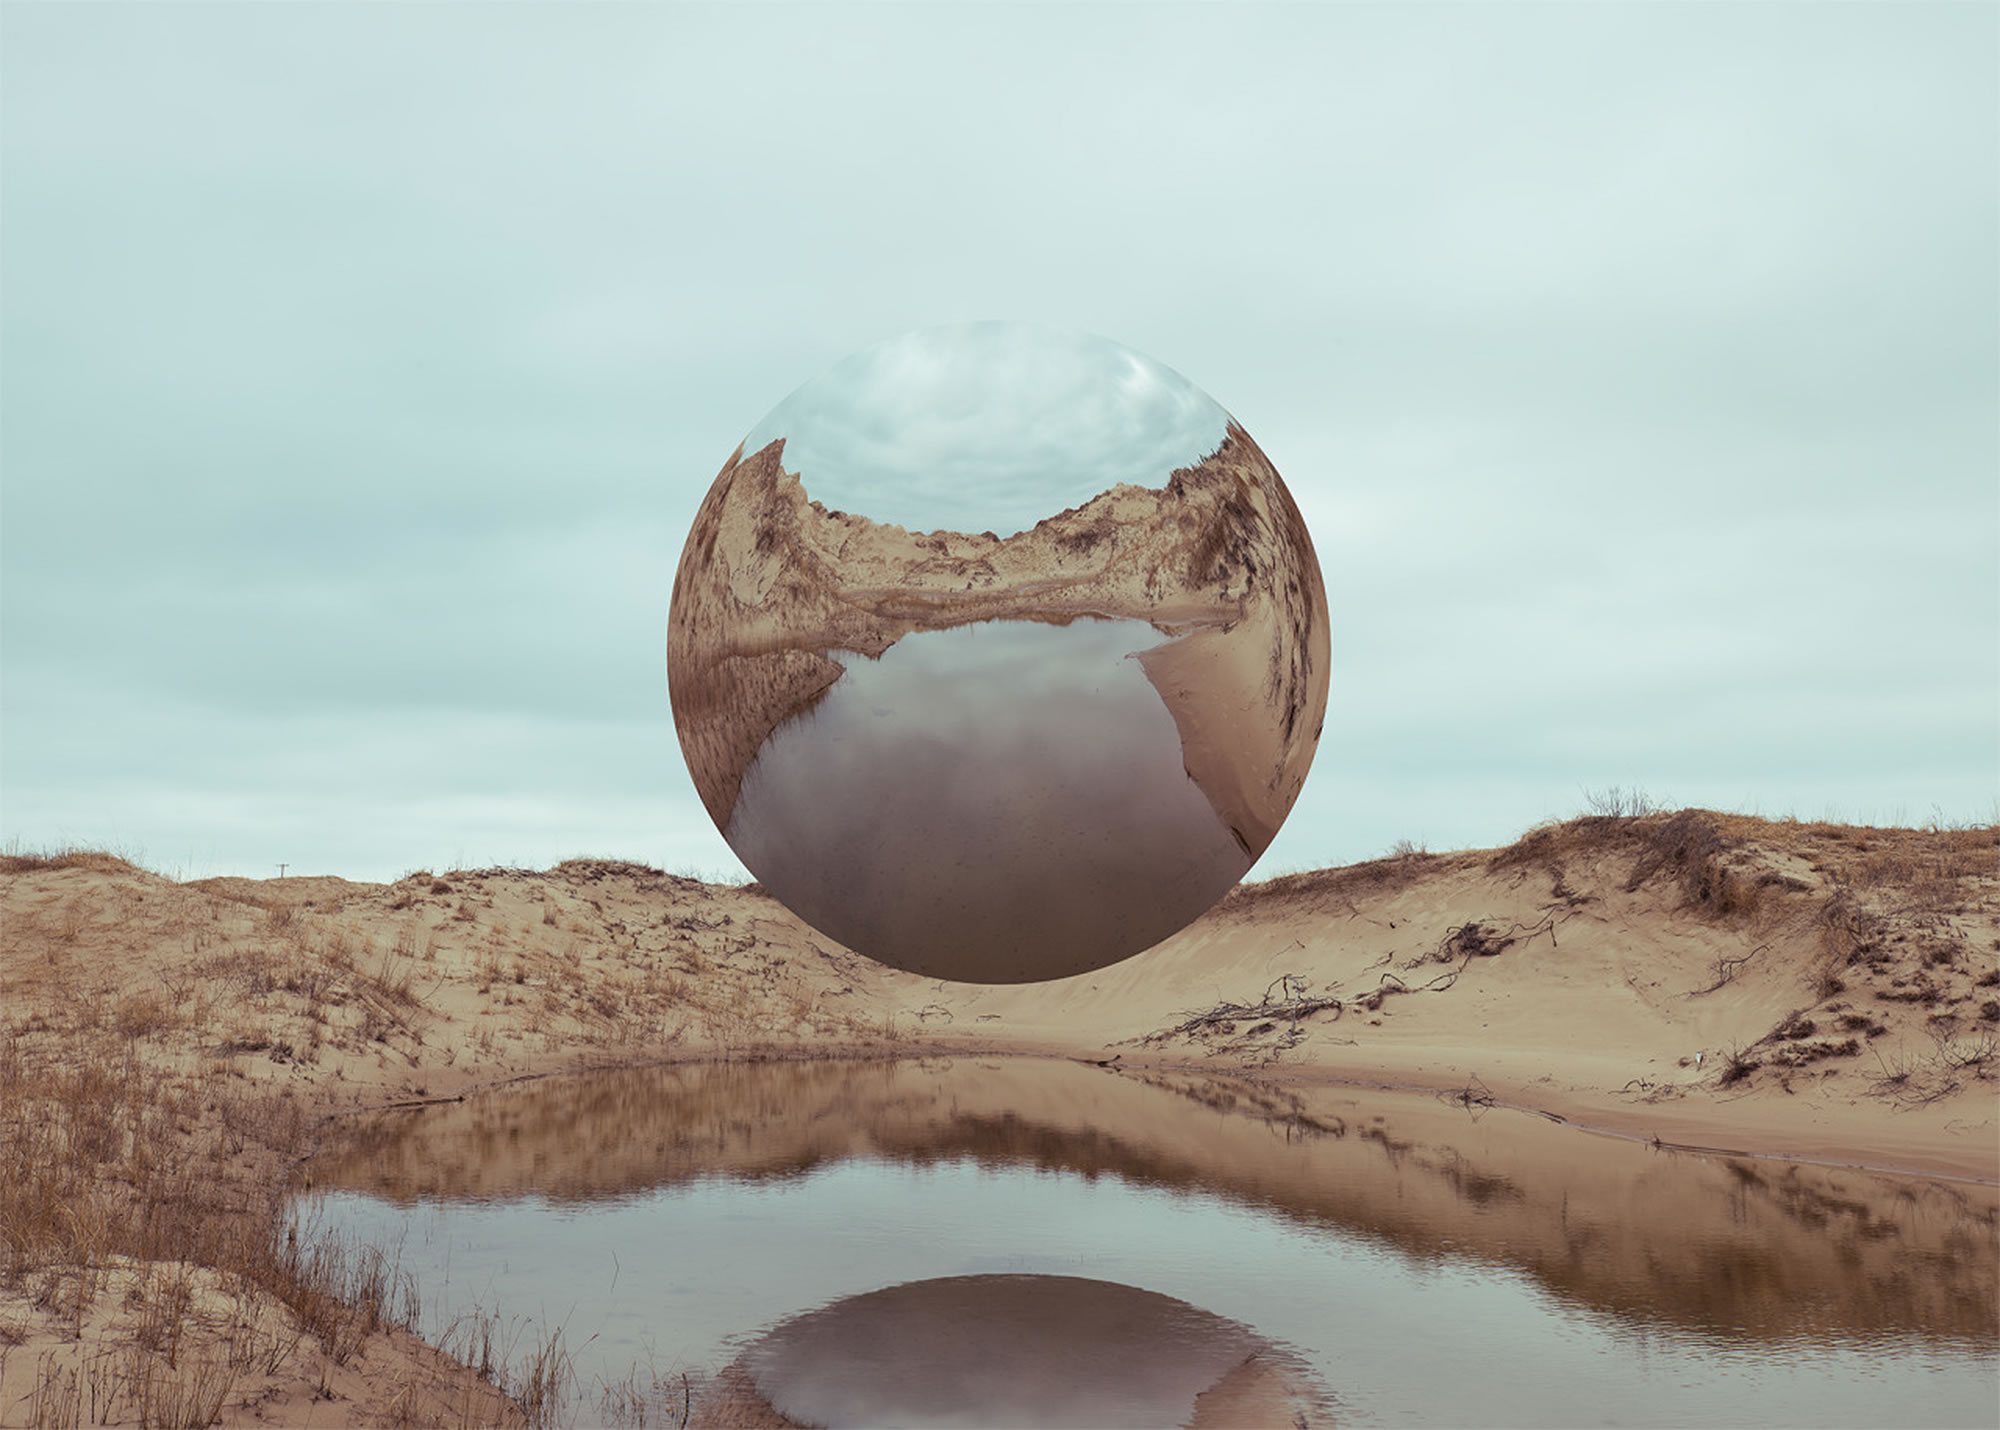 vicissitudes by logan zillmer, circular mirror above beach land